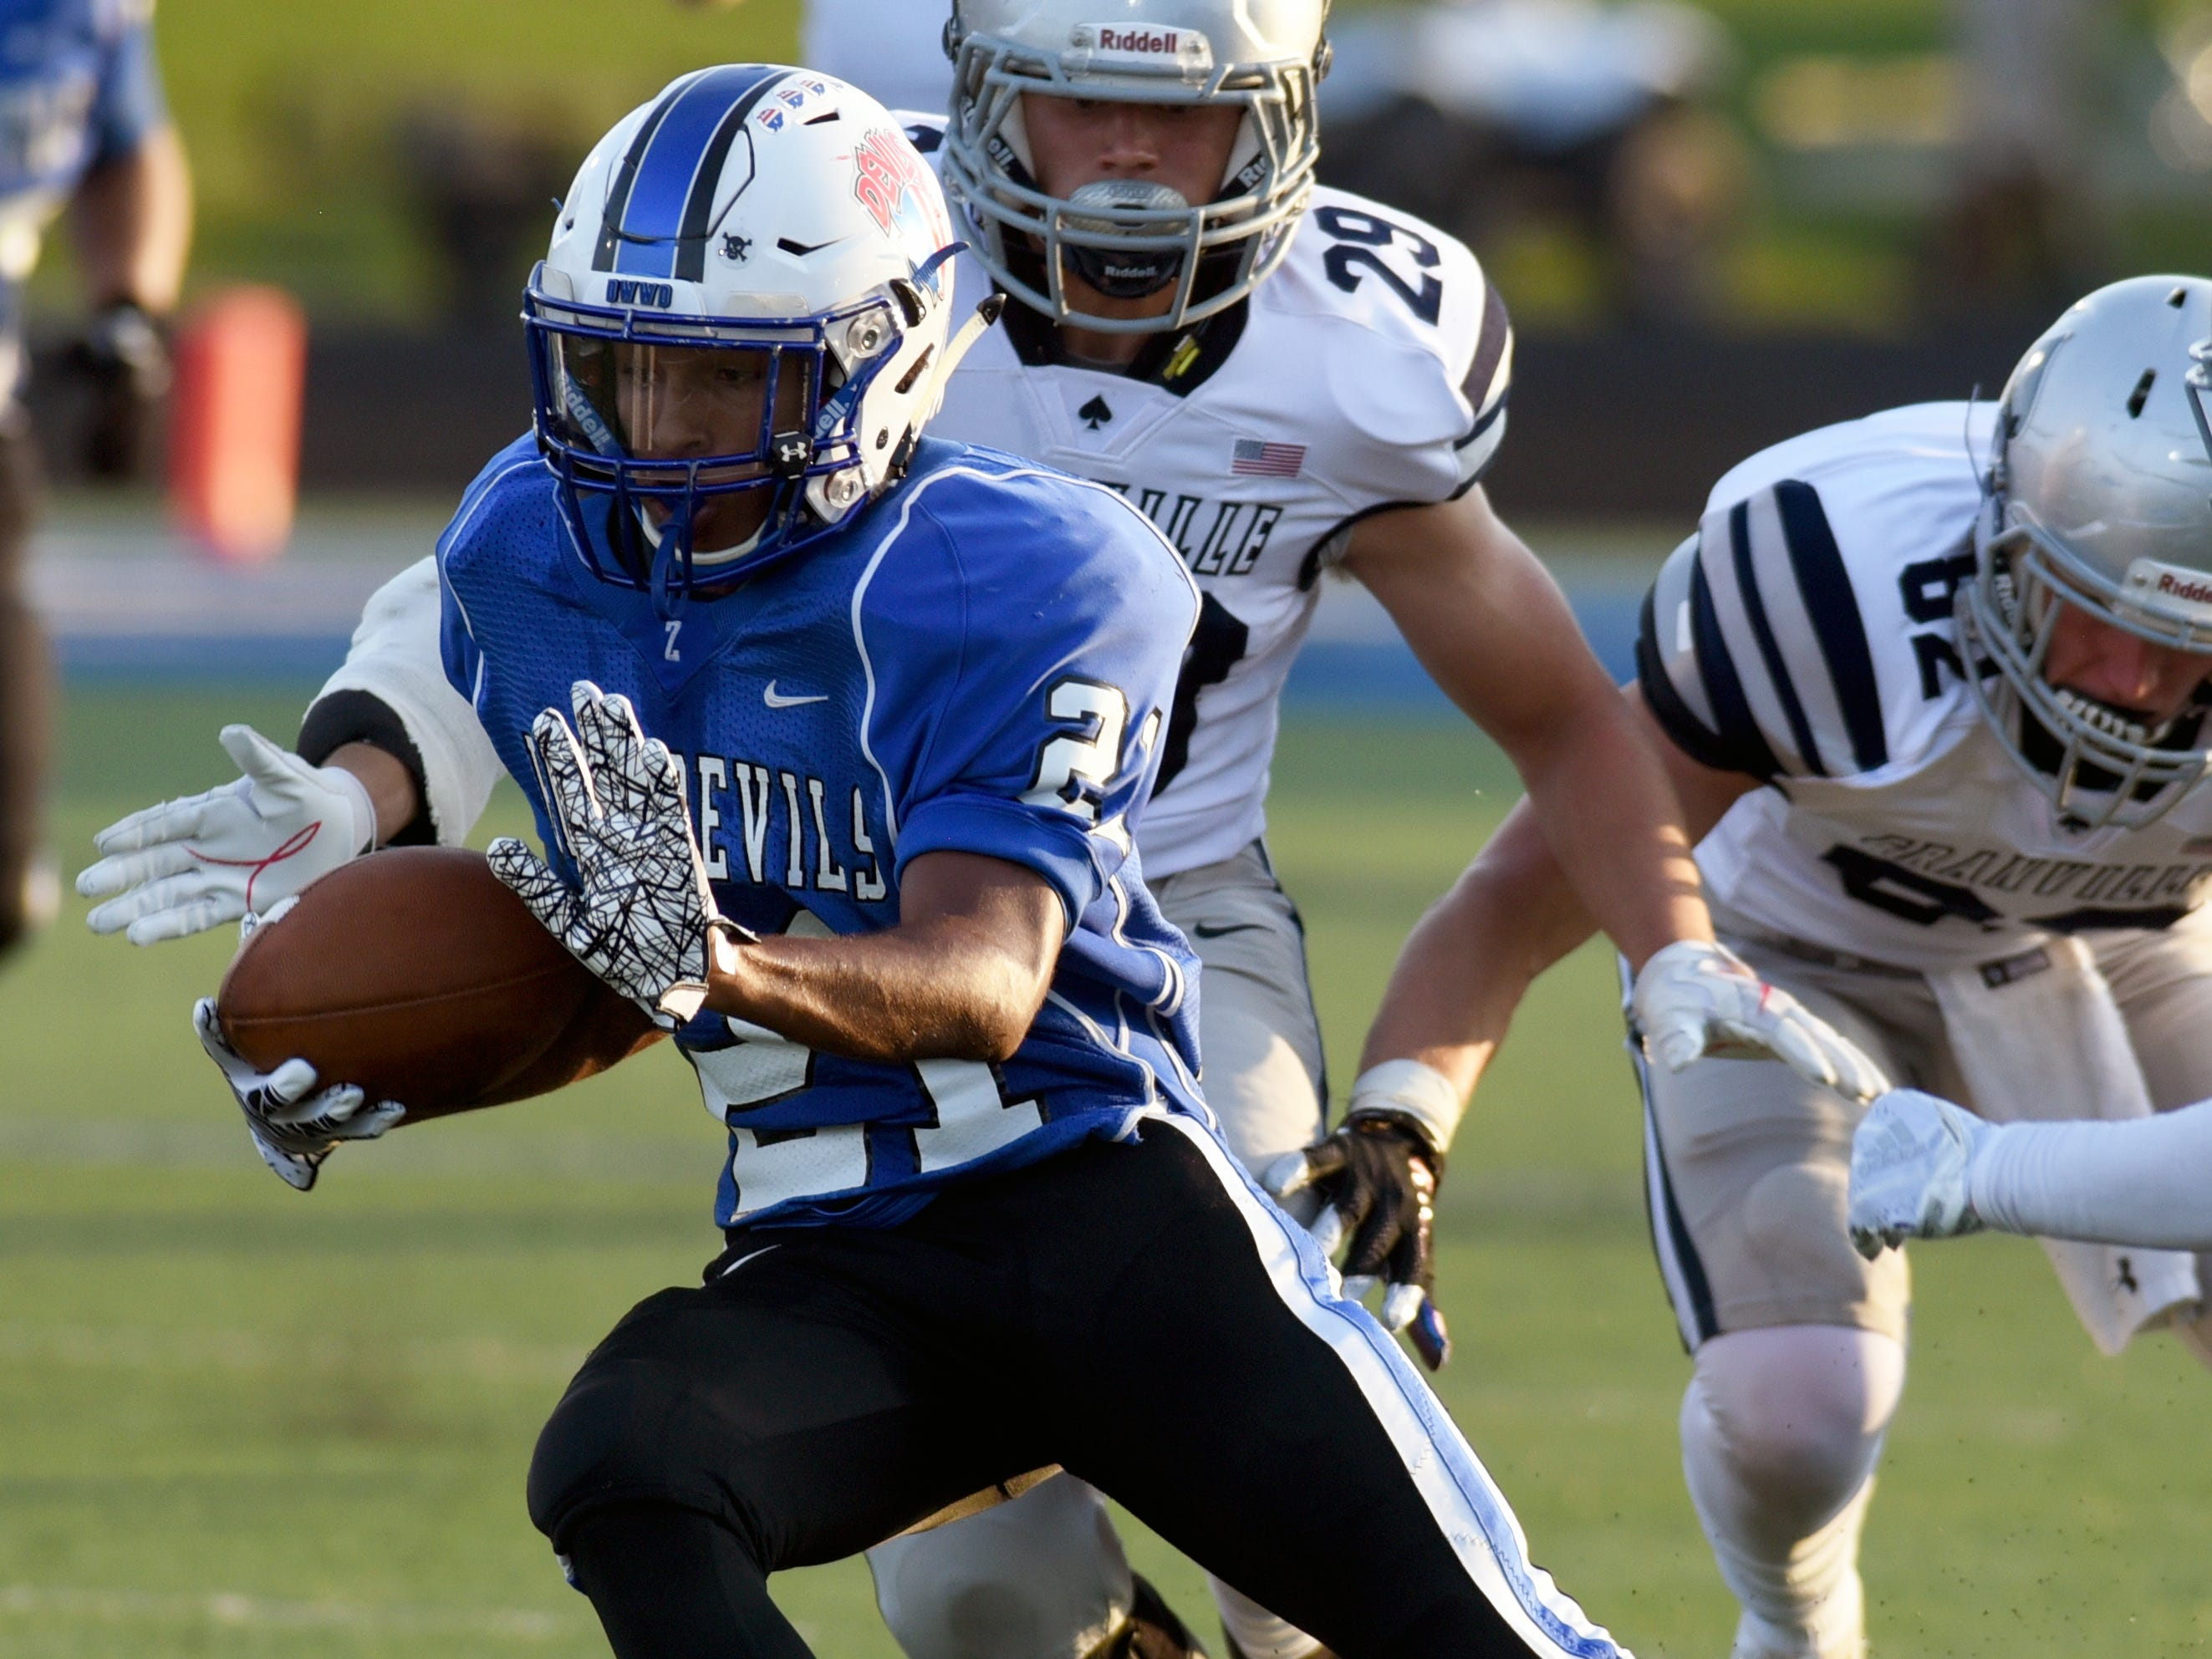 Zanesville's Julius Murphy runs with the ball after catching a pass against Granville. The Blue Aces held on for a 17-14 win on Friday night at John D. Sulsberger Memorial Stadium.